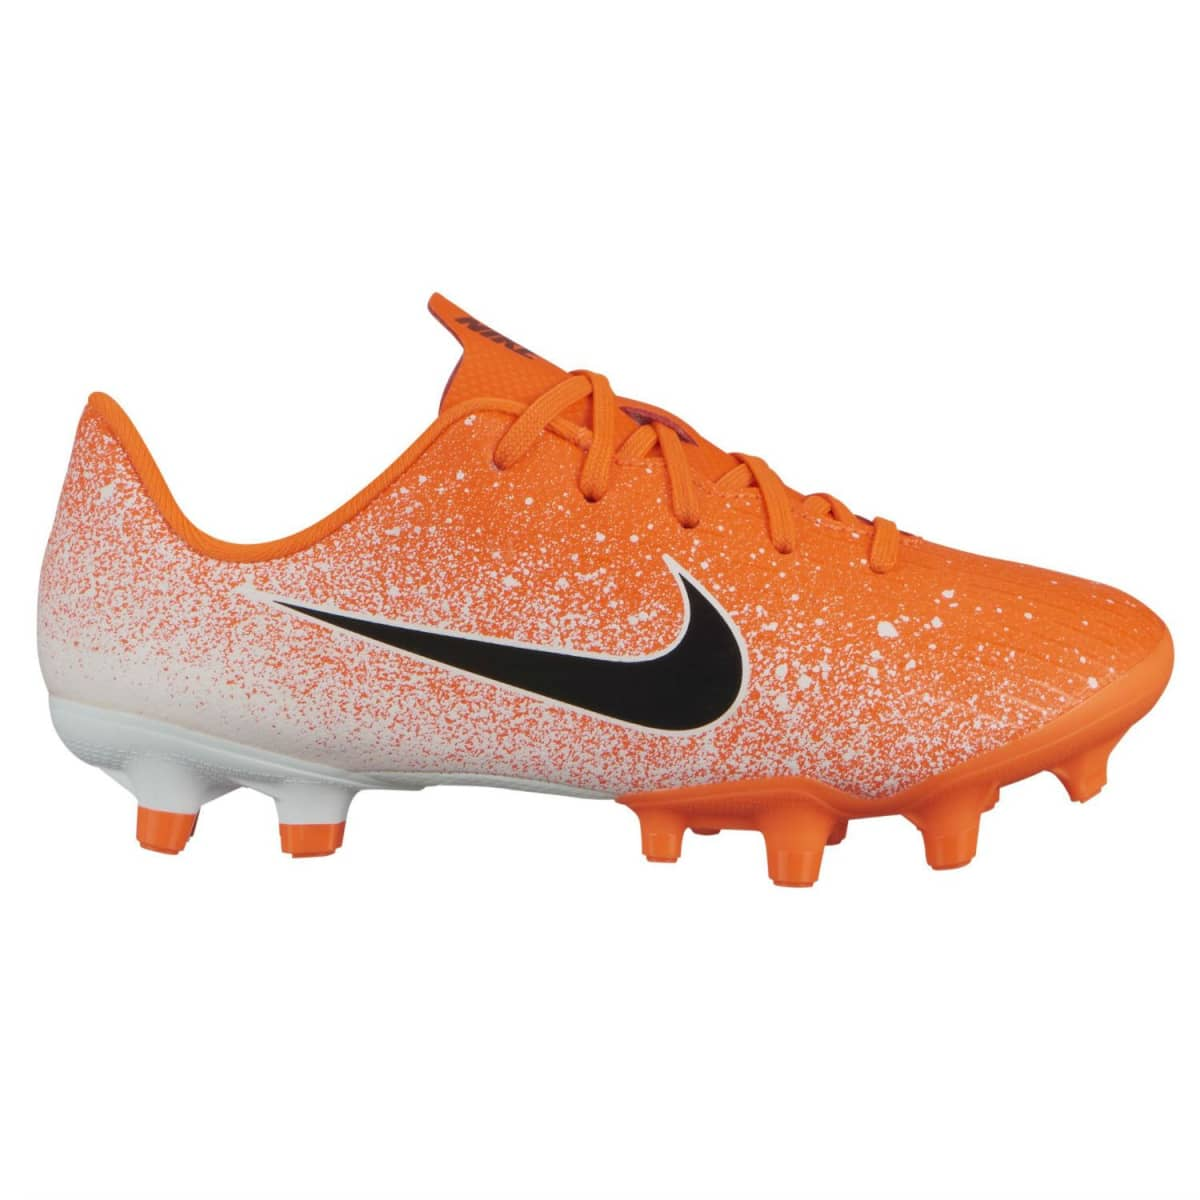 5cc20d9cac5460 Junior | Soccer Boots | Sportsmans Warehouse